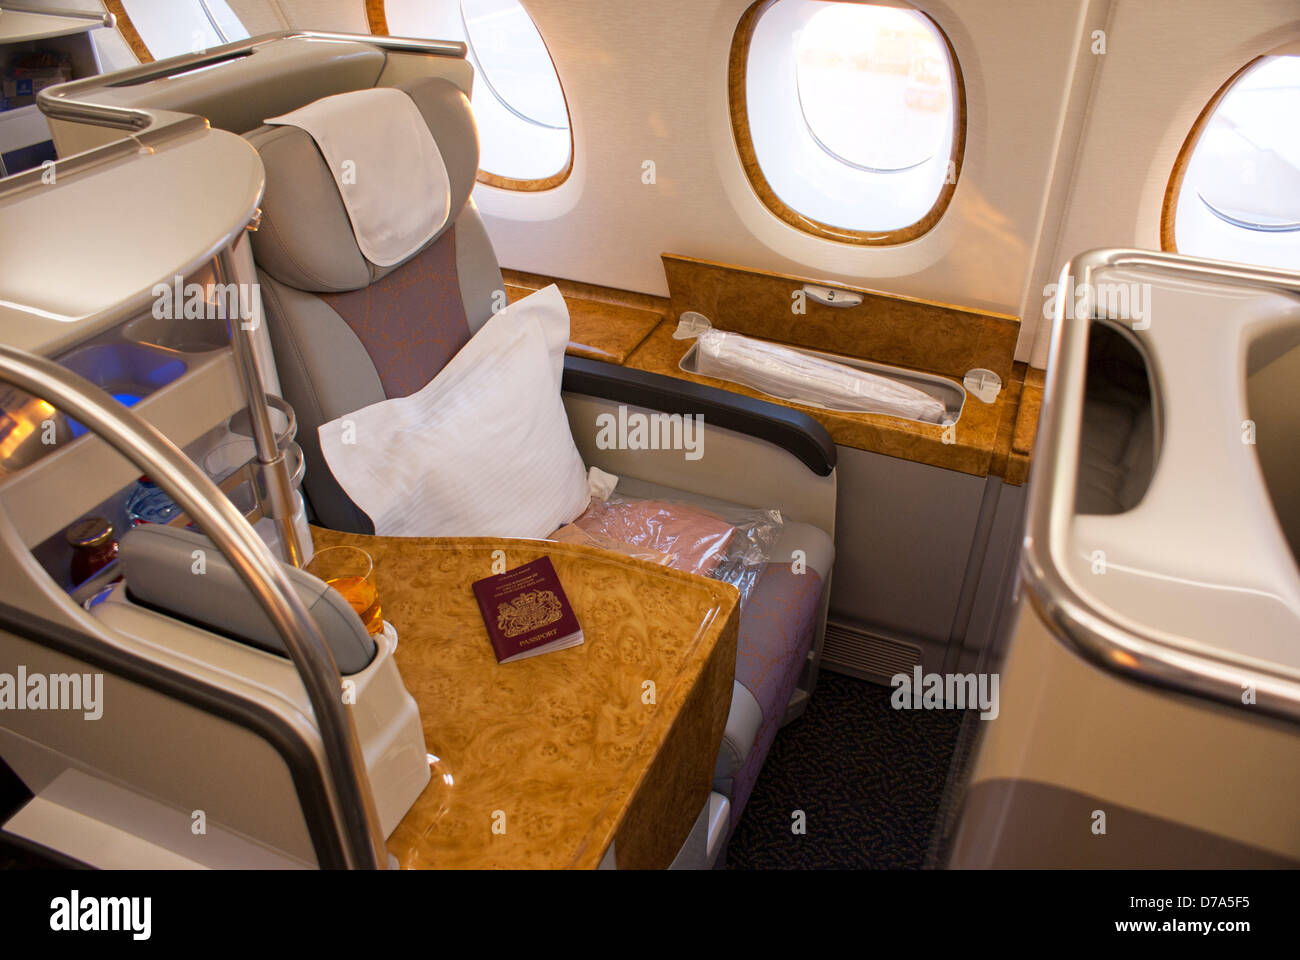 Business Class Seating On Airbus A380 Aircraft Upper Deck